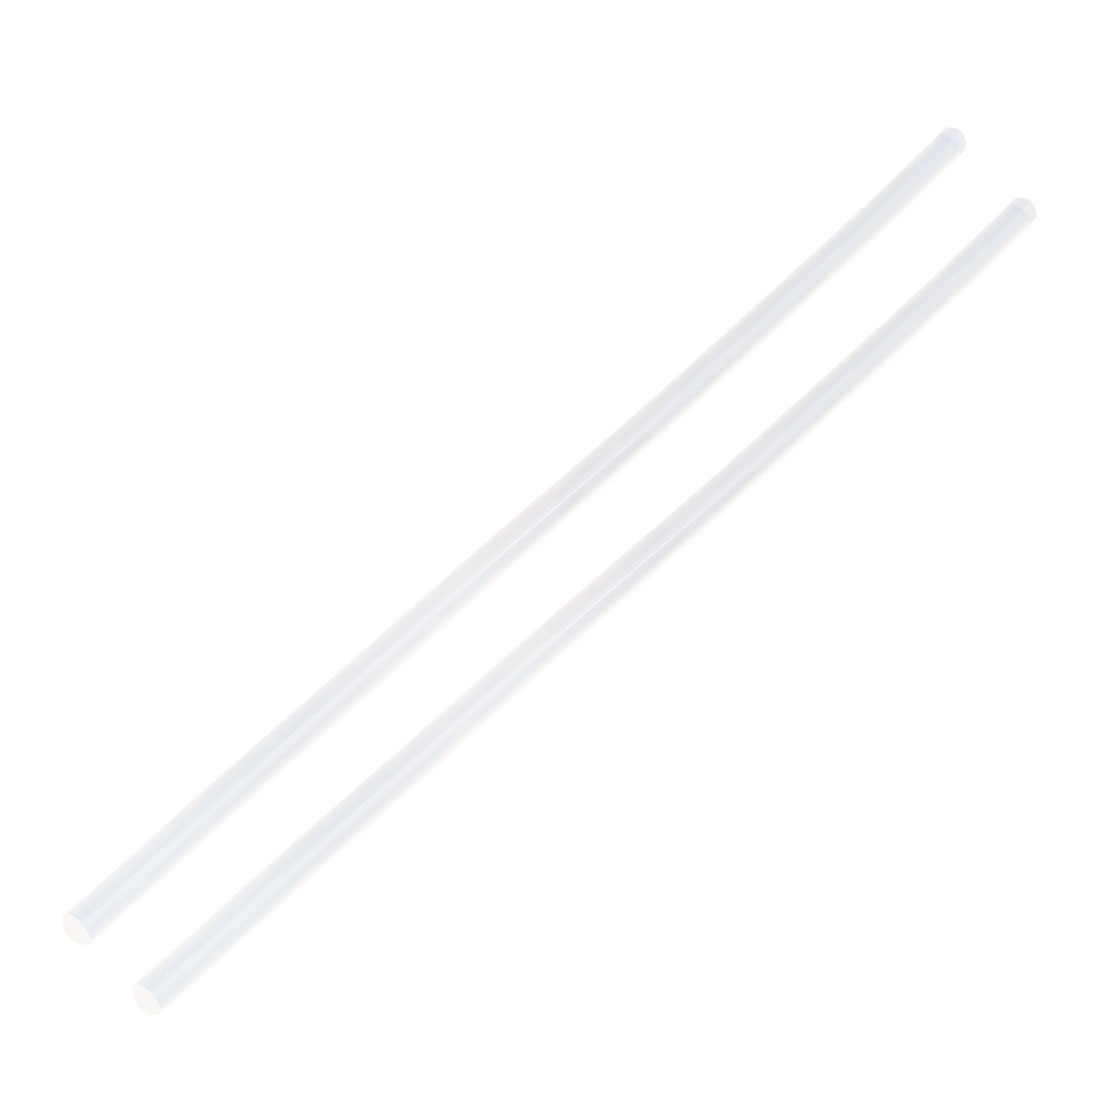 2 Pcs 7mm x 300mm Hot Melt Glue Adhesive Stick Clear for Electric Tool Heating Gun